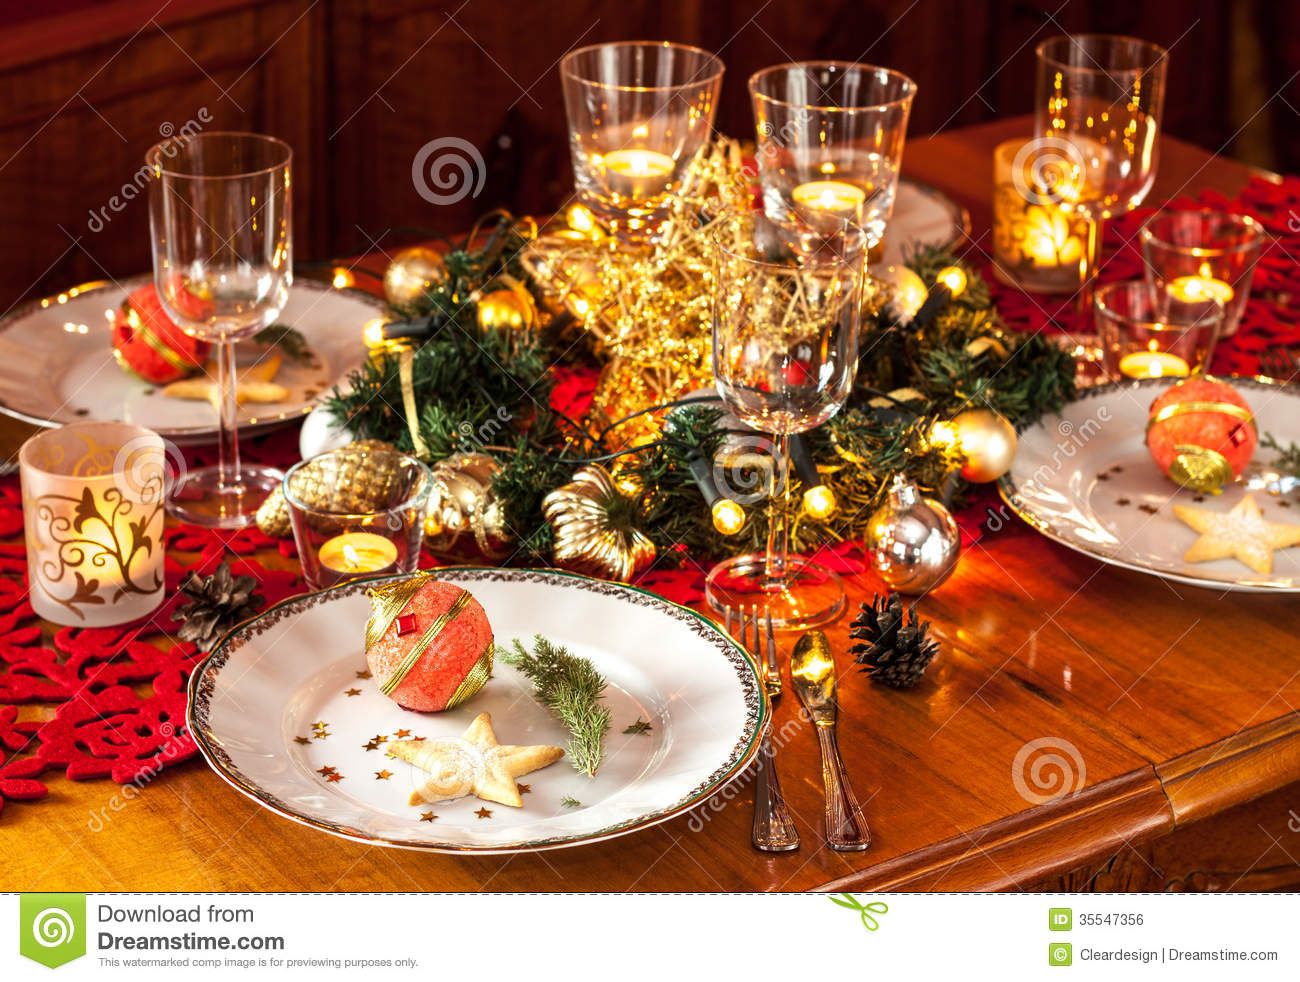 Elegant christmas table decorations - Christmas Dinner Elegant